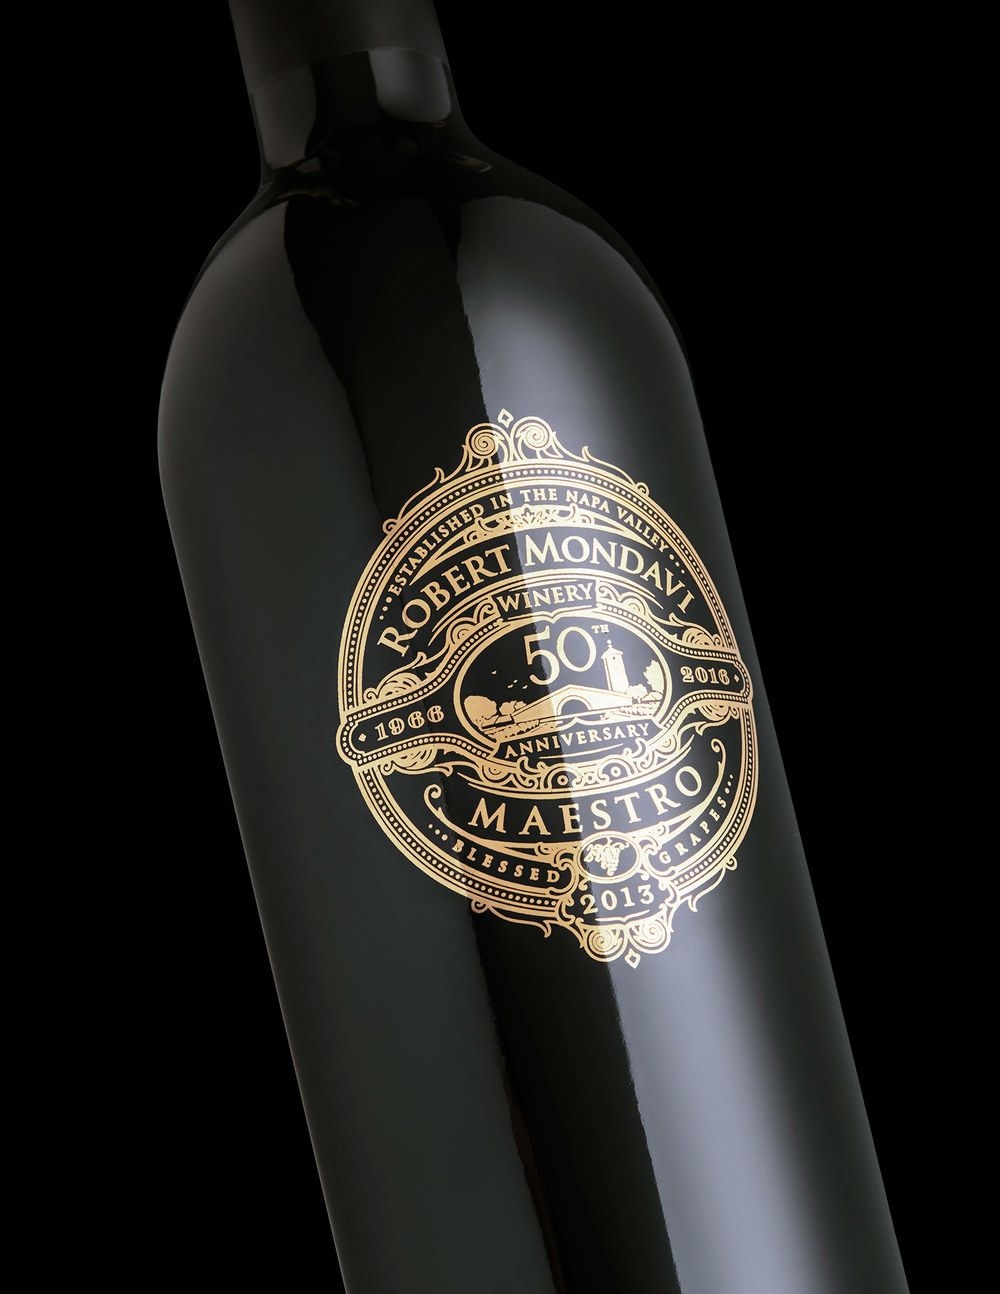 World Packaging Design Society│Home of Packaging Design│Branding│Brand Design│CPG Design│FMCG Design